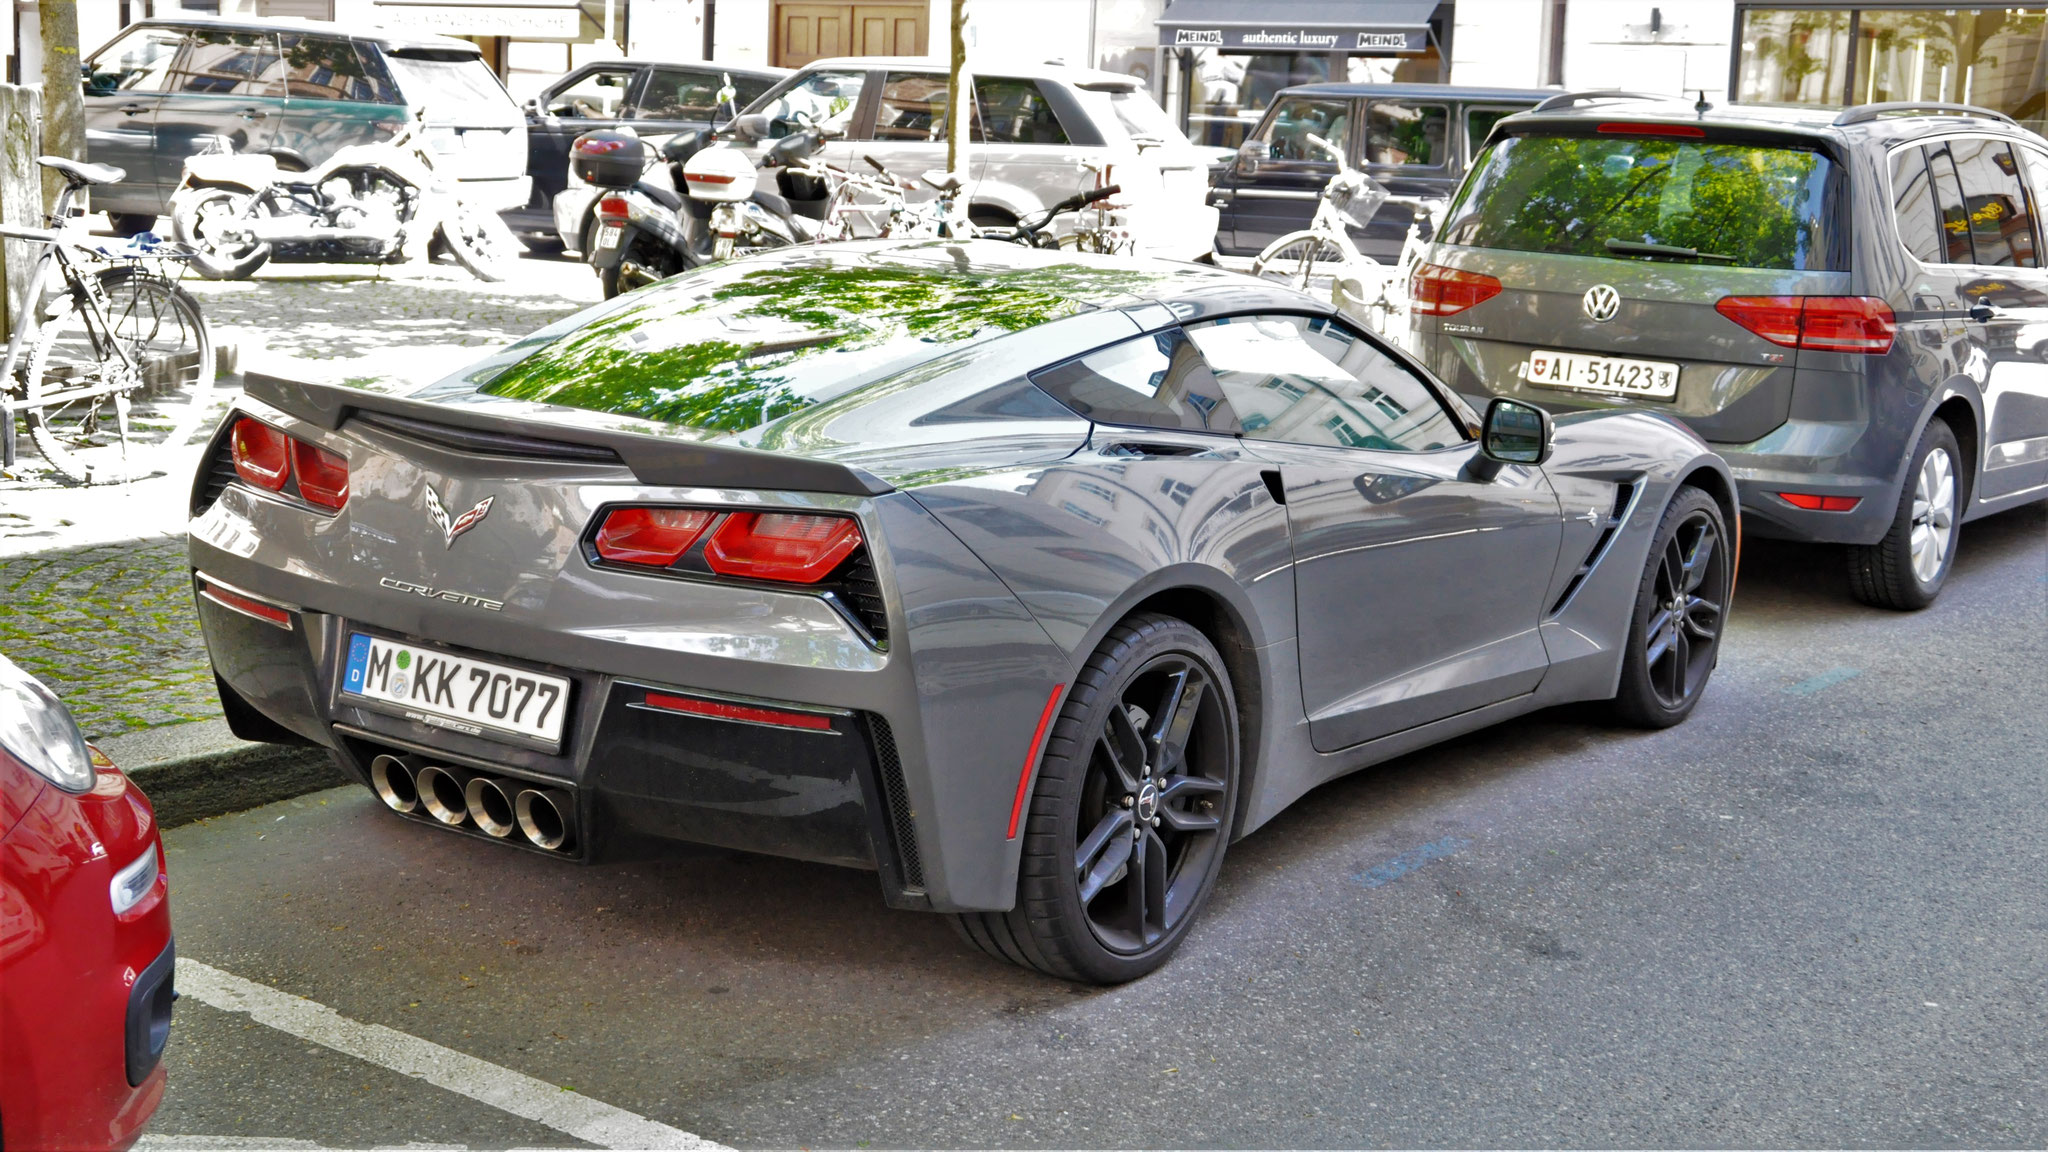 Chevrolet Corvette C7 Stingray - M-KK-7077